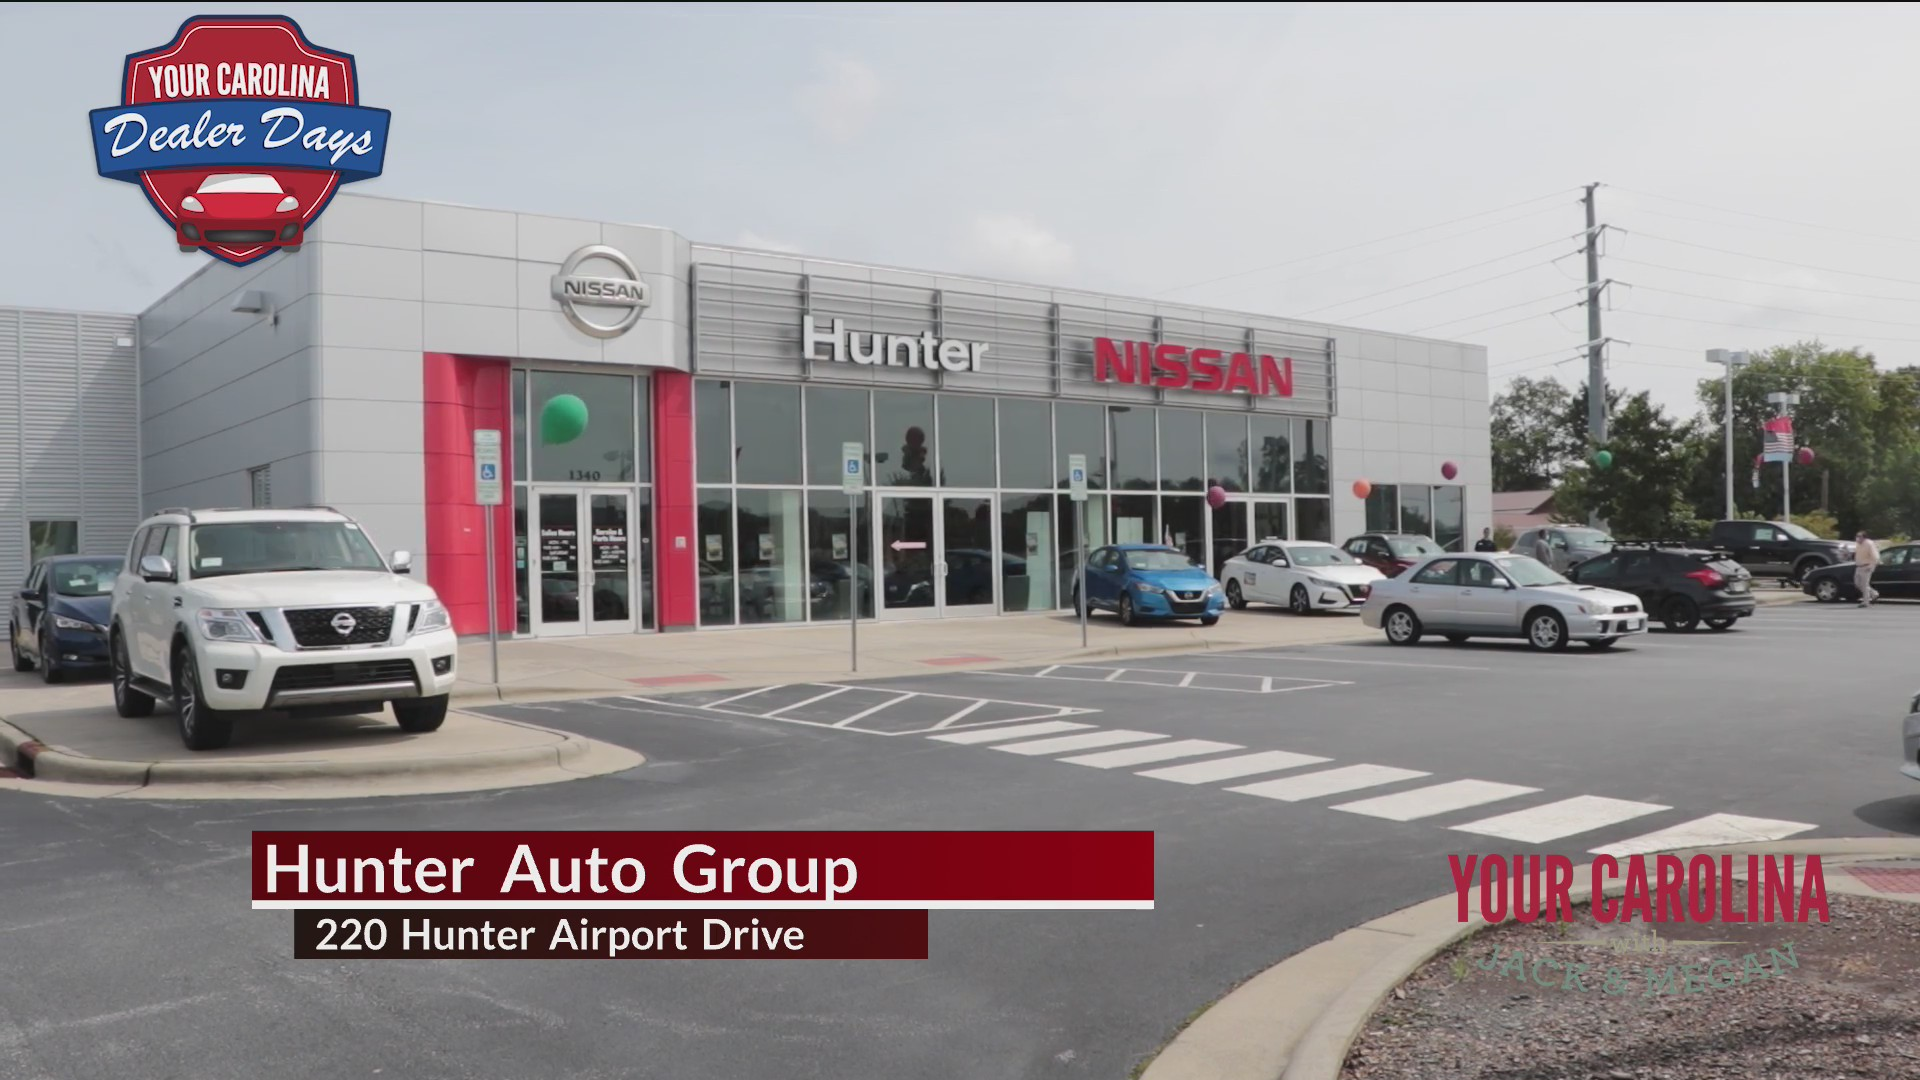 Dealer Days - Hunter Auto Group